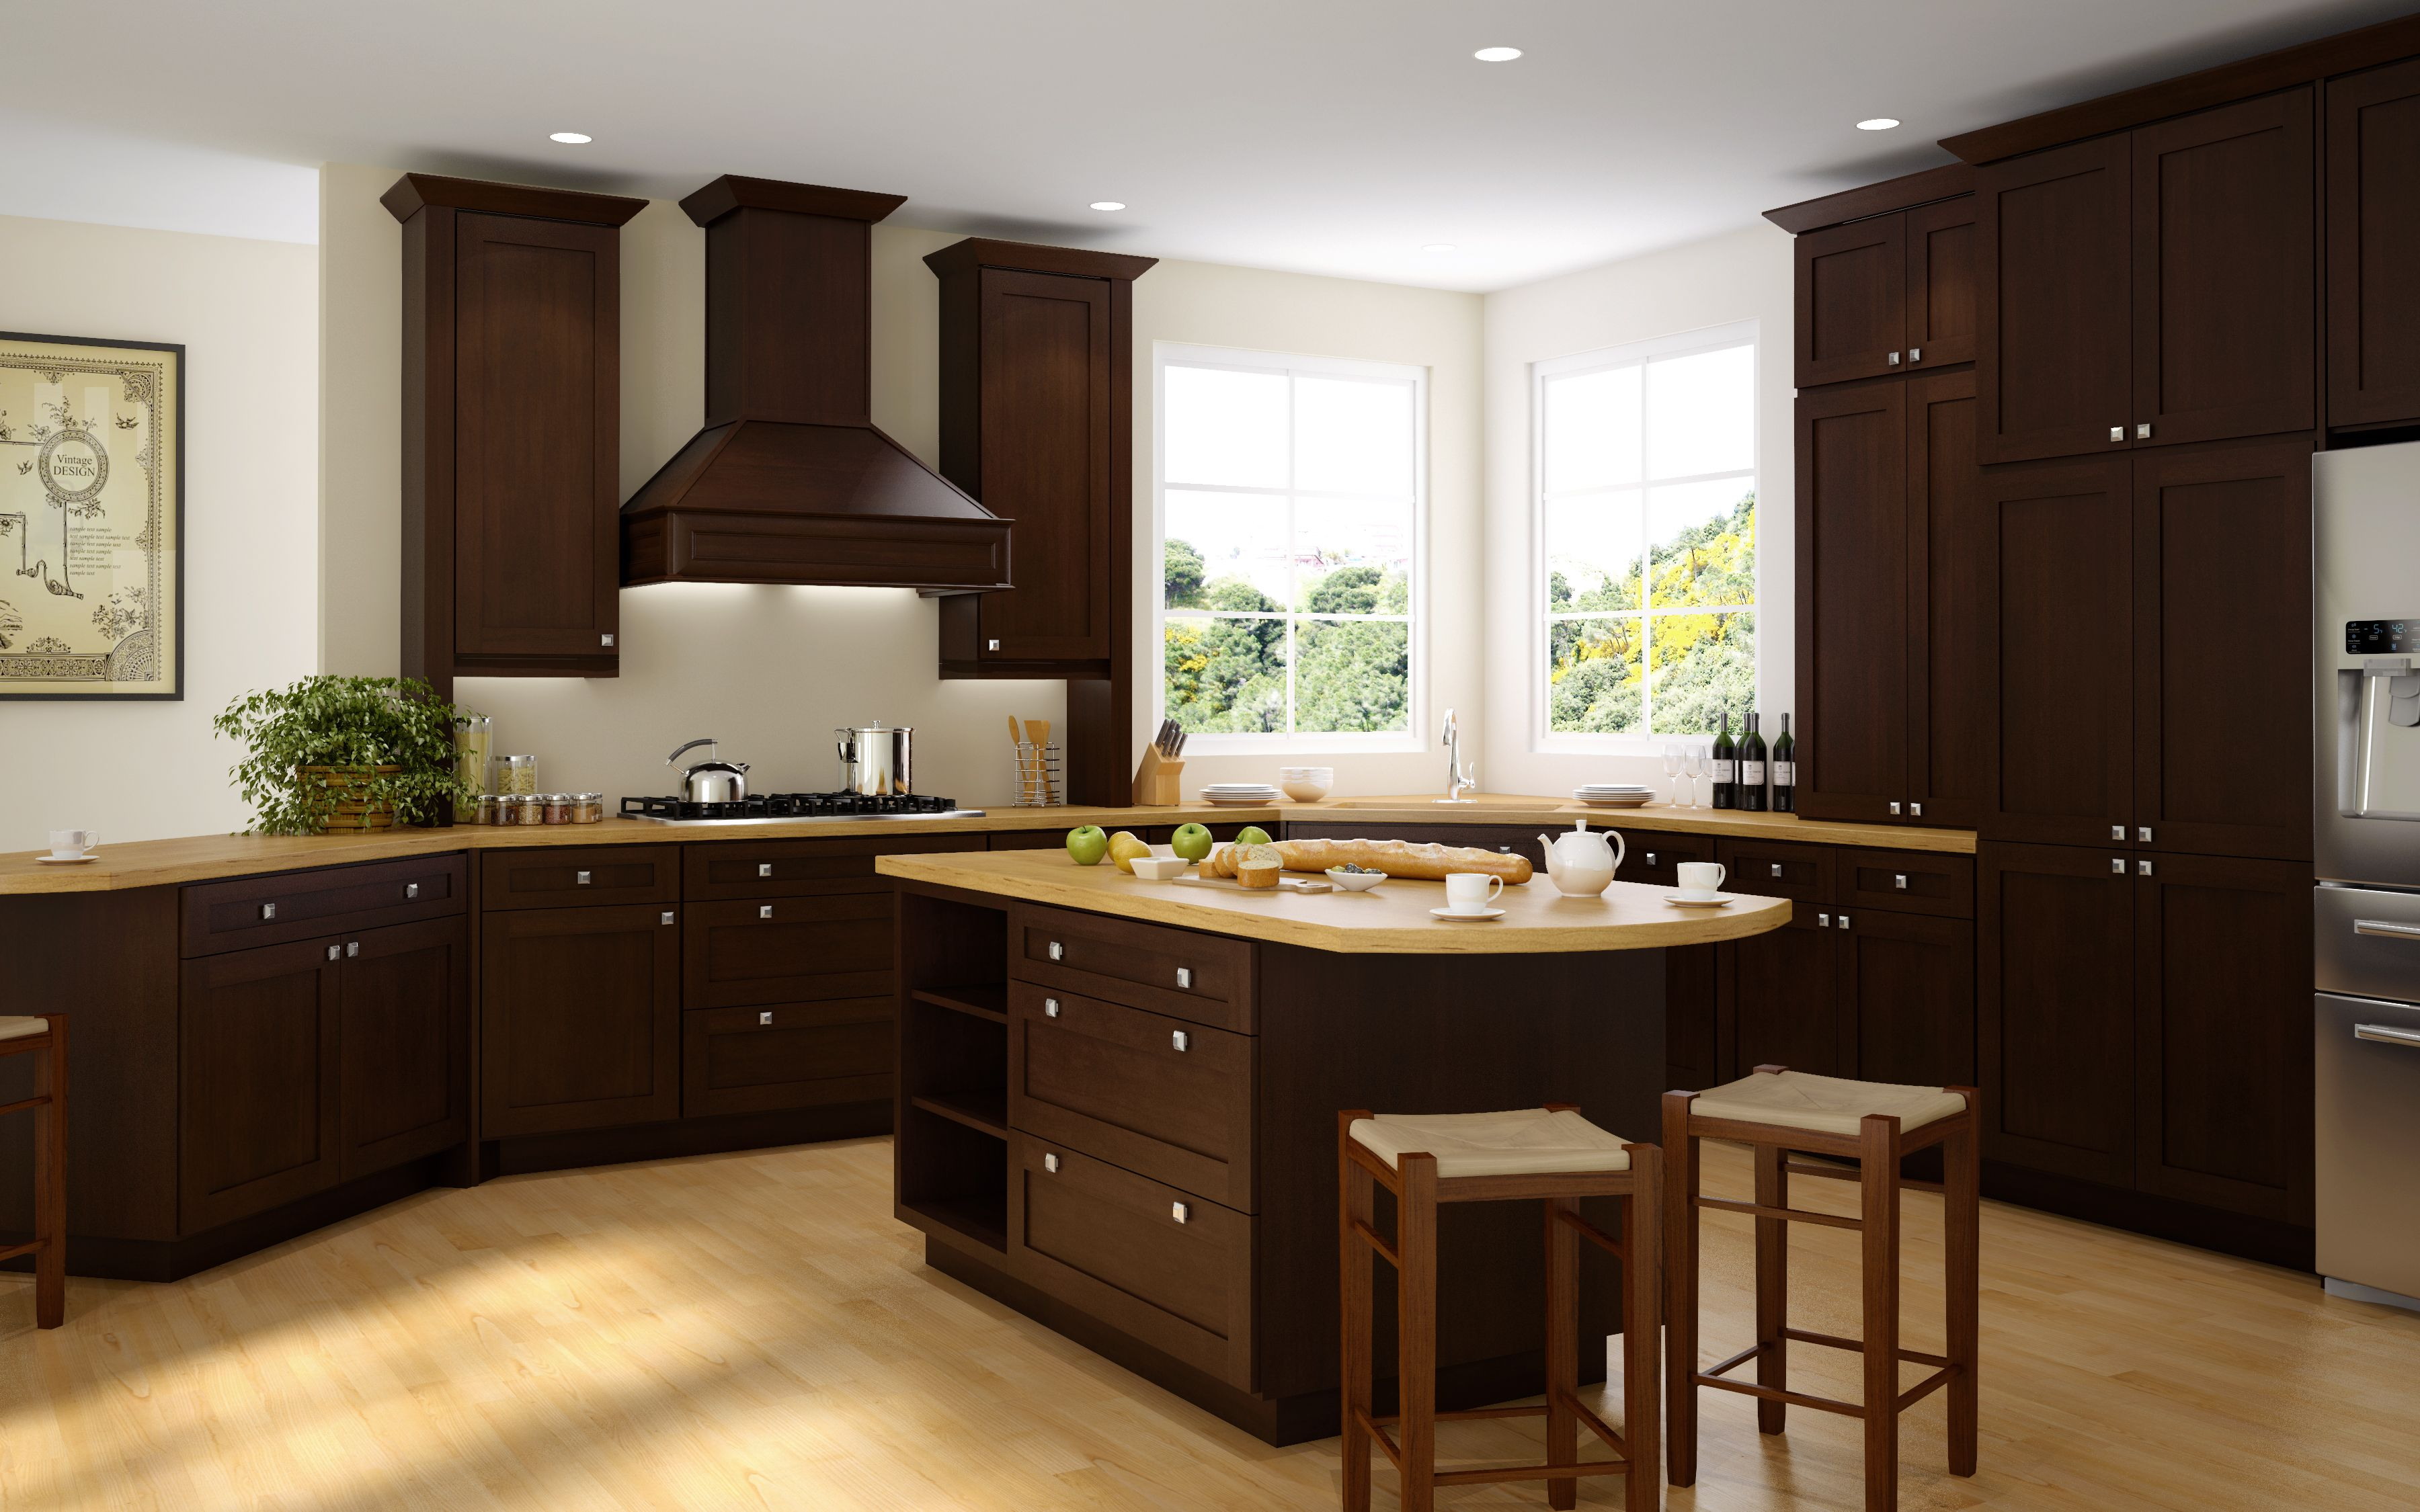 Cabinet Style Espresso Matte Material Solid Birch With Full Overlay Fun Fact Wholesale Kitchen Cabinets Assembled Kitchen Cabinets Kitchen Cabinets